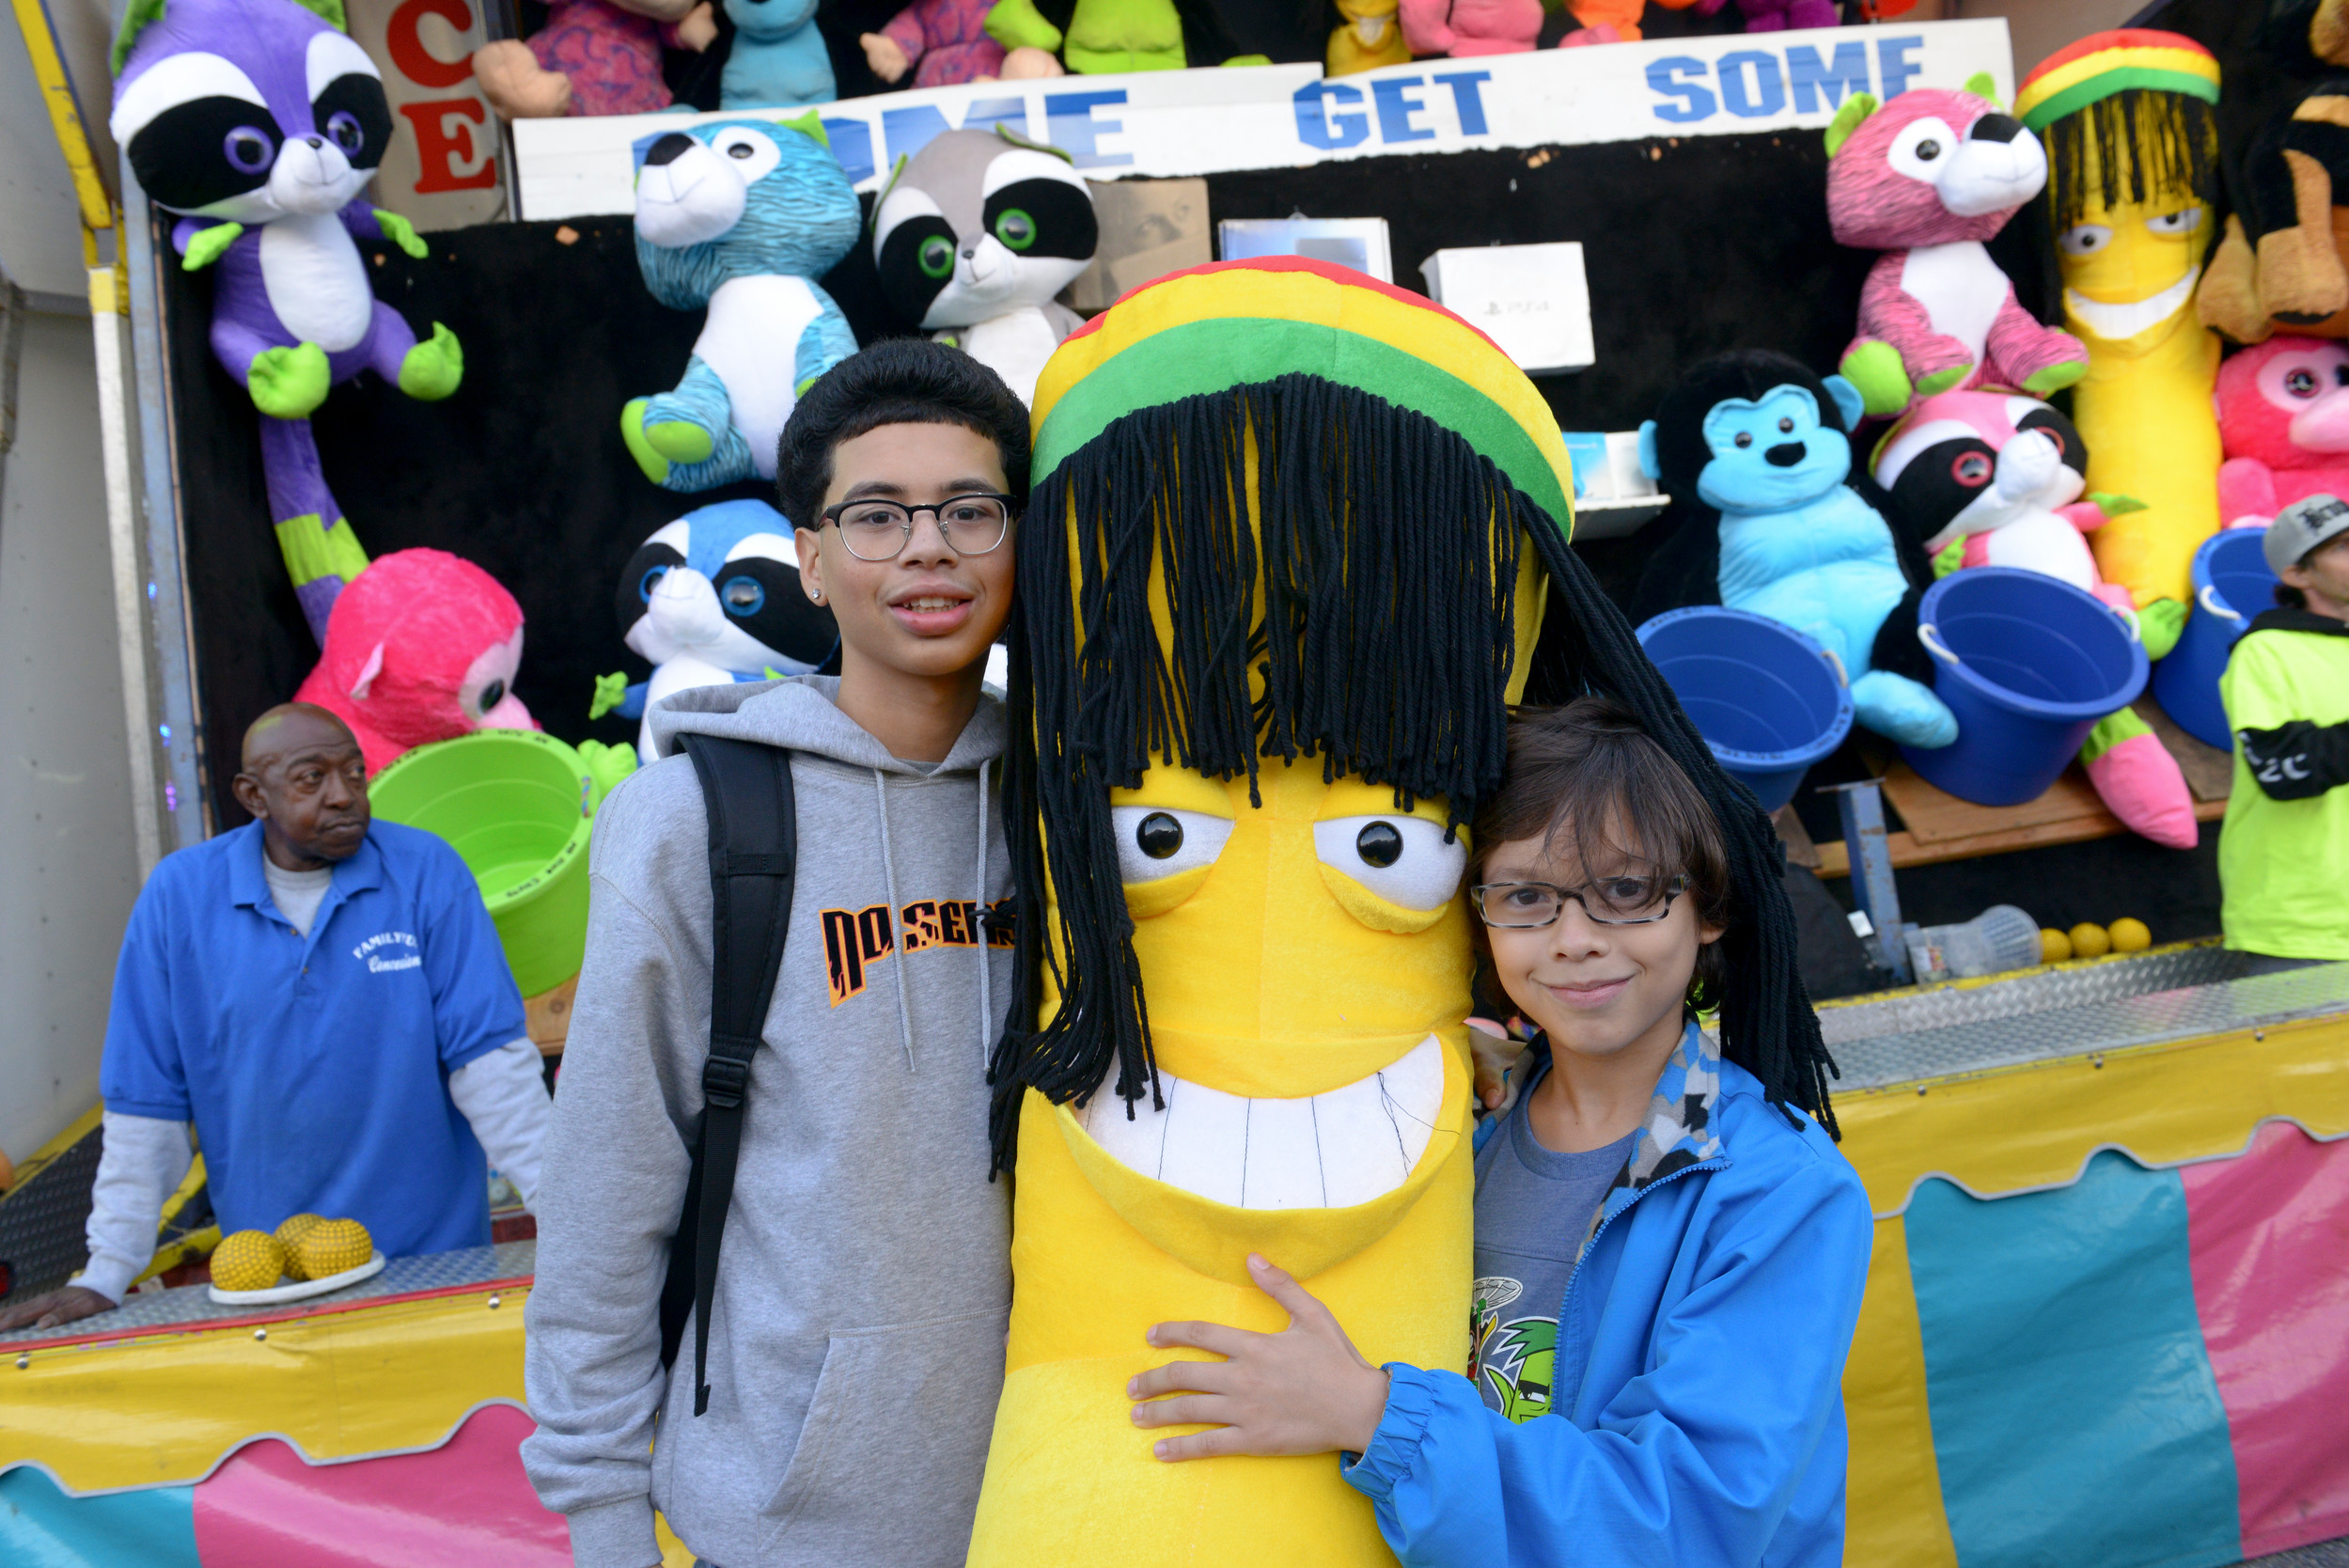 16-year-old Roberto Rosario and Ayden Medina, 9, won a stuffed Rasta banana.